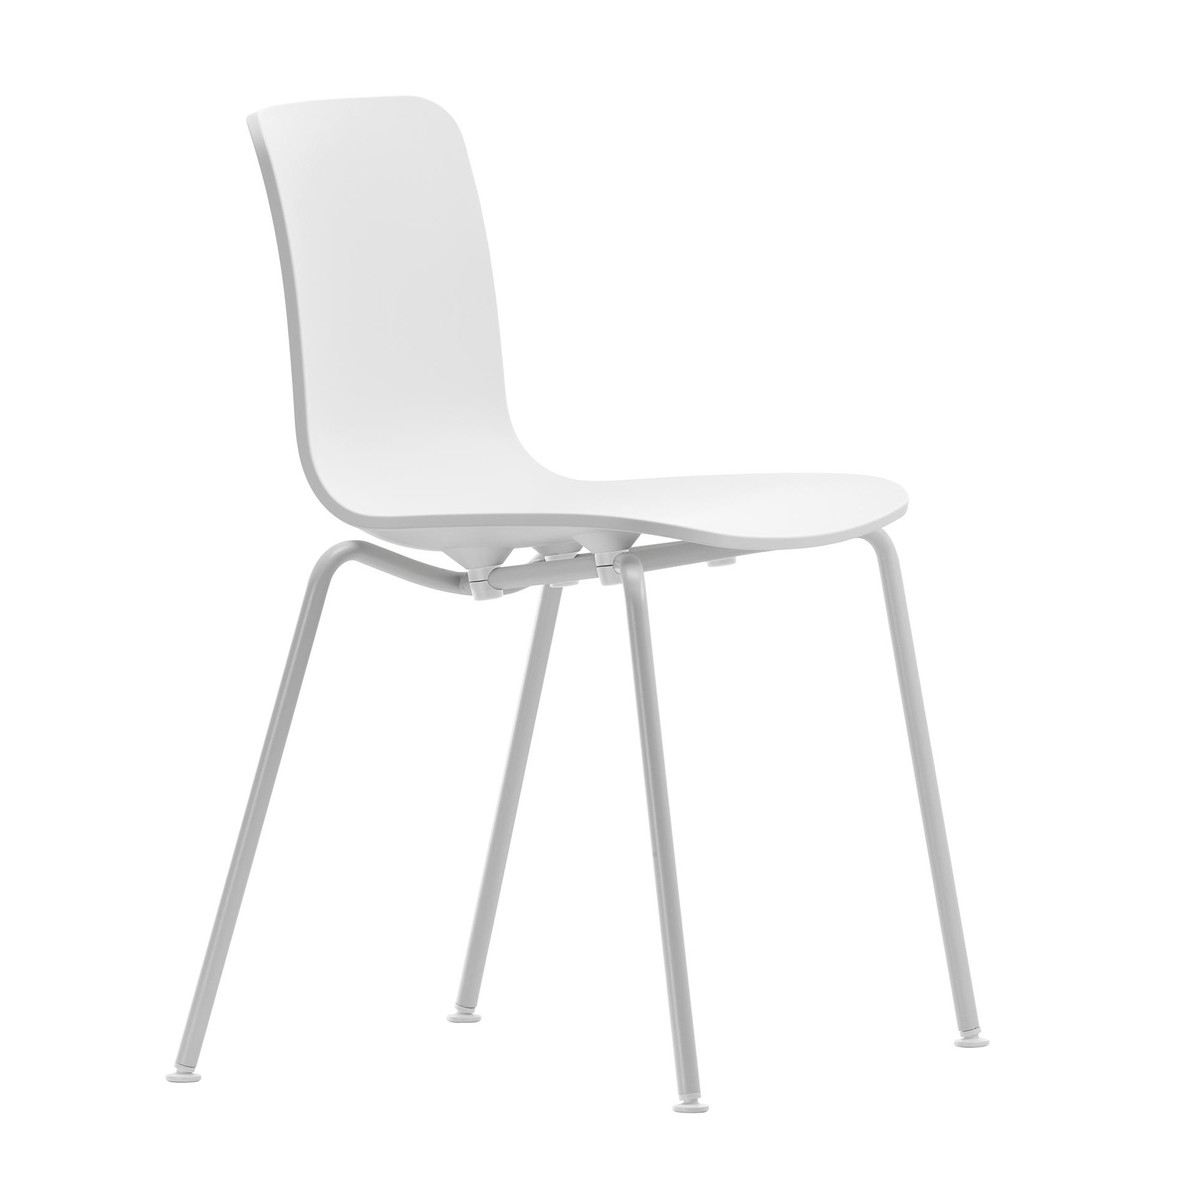 hal tube white outdoor chair vitra. Black Bedroom Furniture Sets. Home Design Ideas